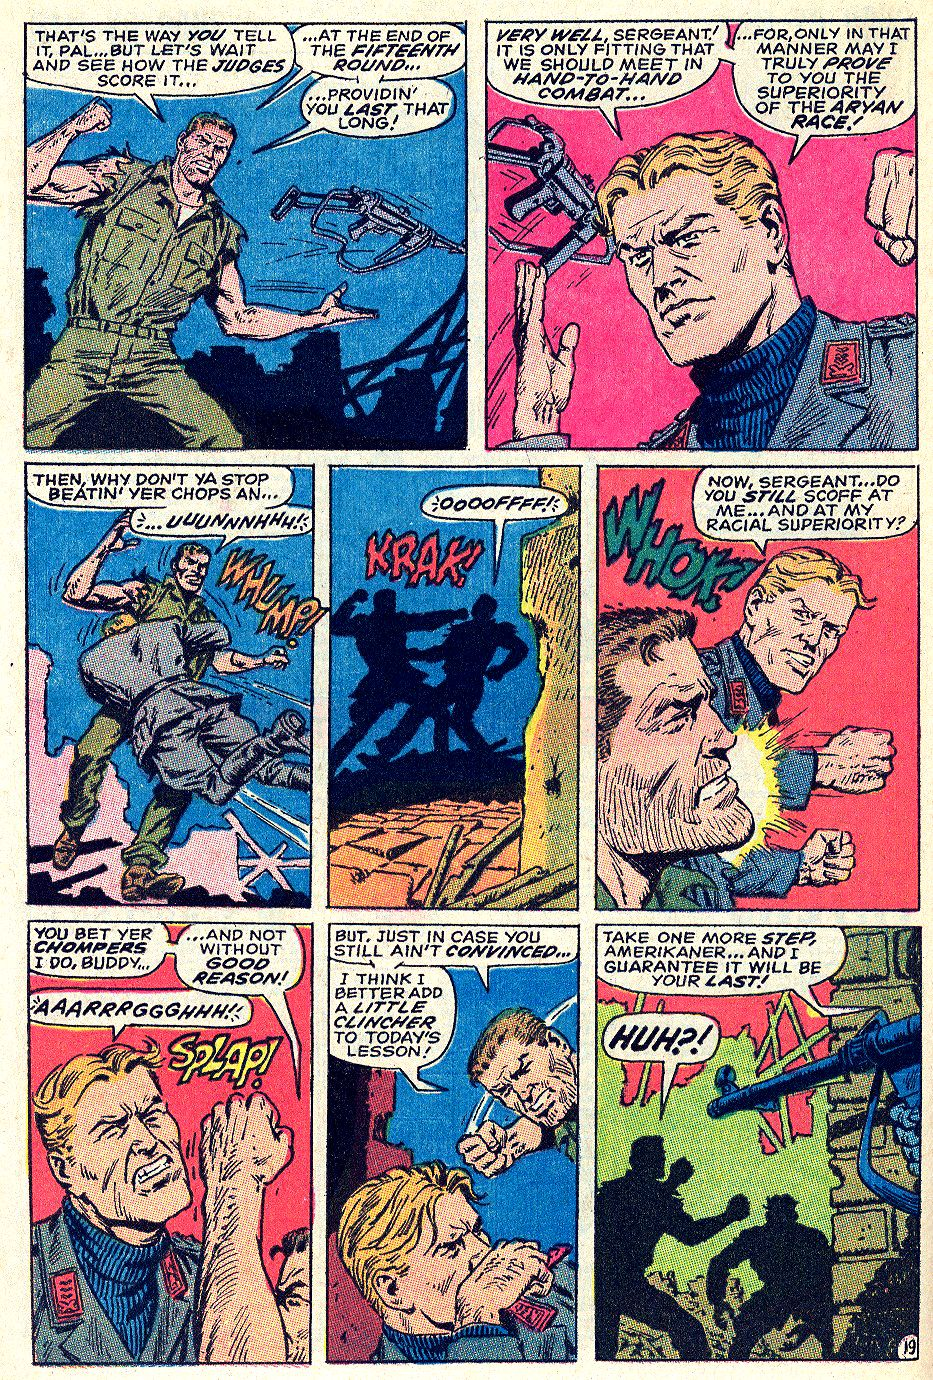 Read online Sgt. Fury comic -  Issue #66 - 28